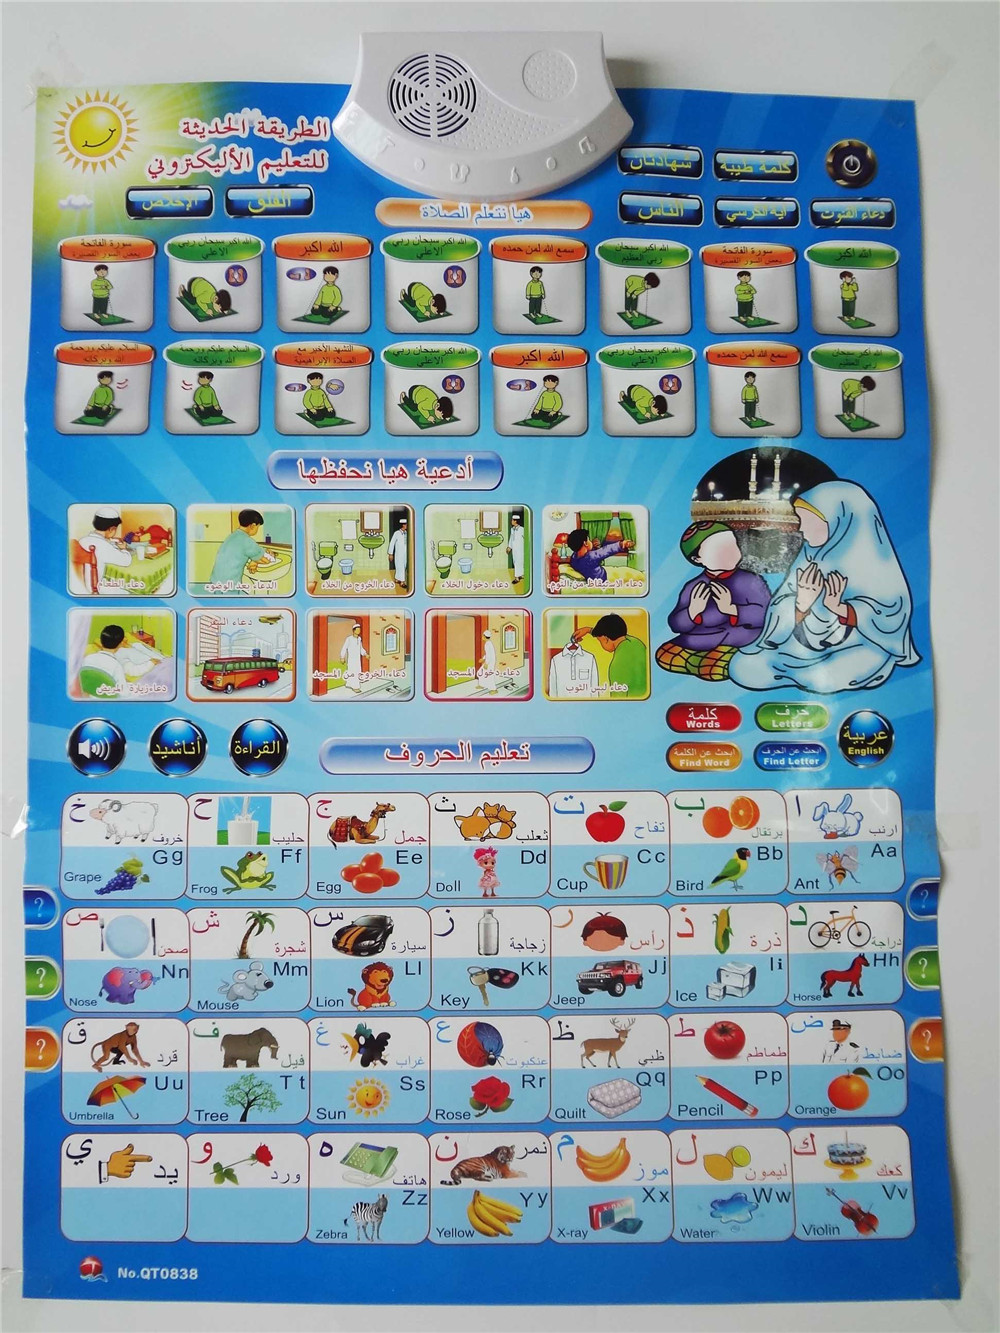 Quran chart Arabic and English tablet Learning & Education,ABC and Word Flip Charts Learning Machine Best Gifts for Muslim Baby(China (Mainland))